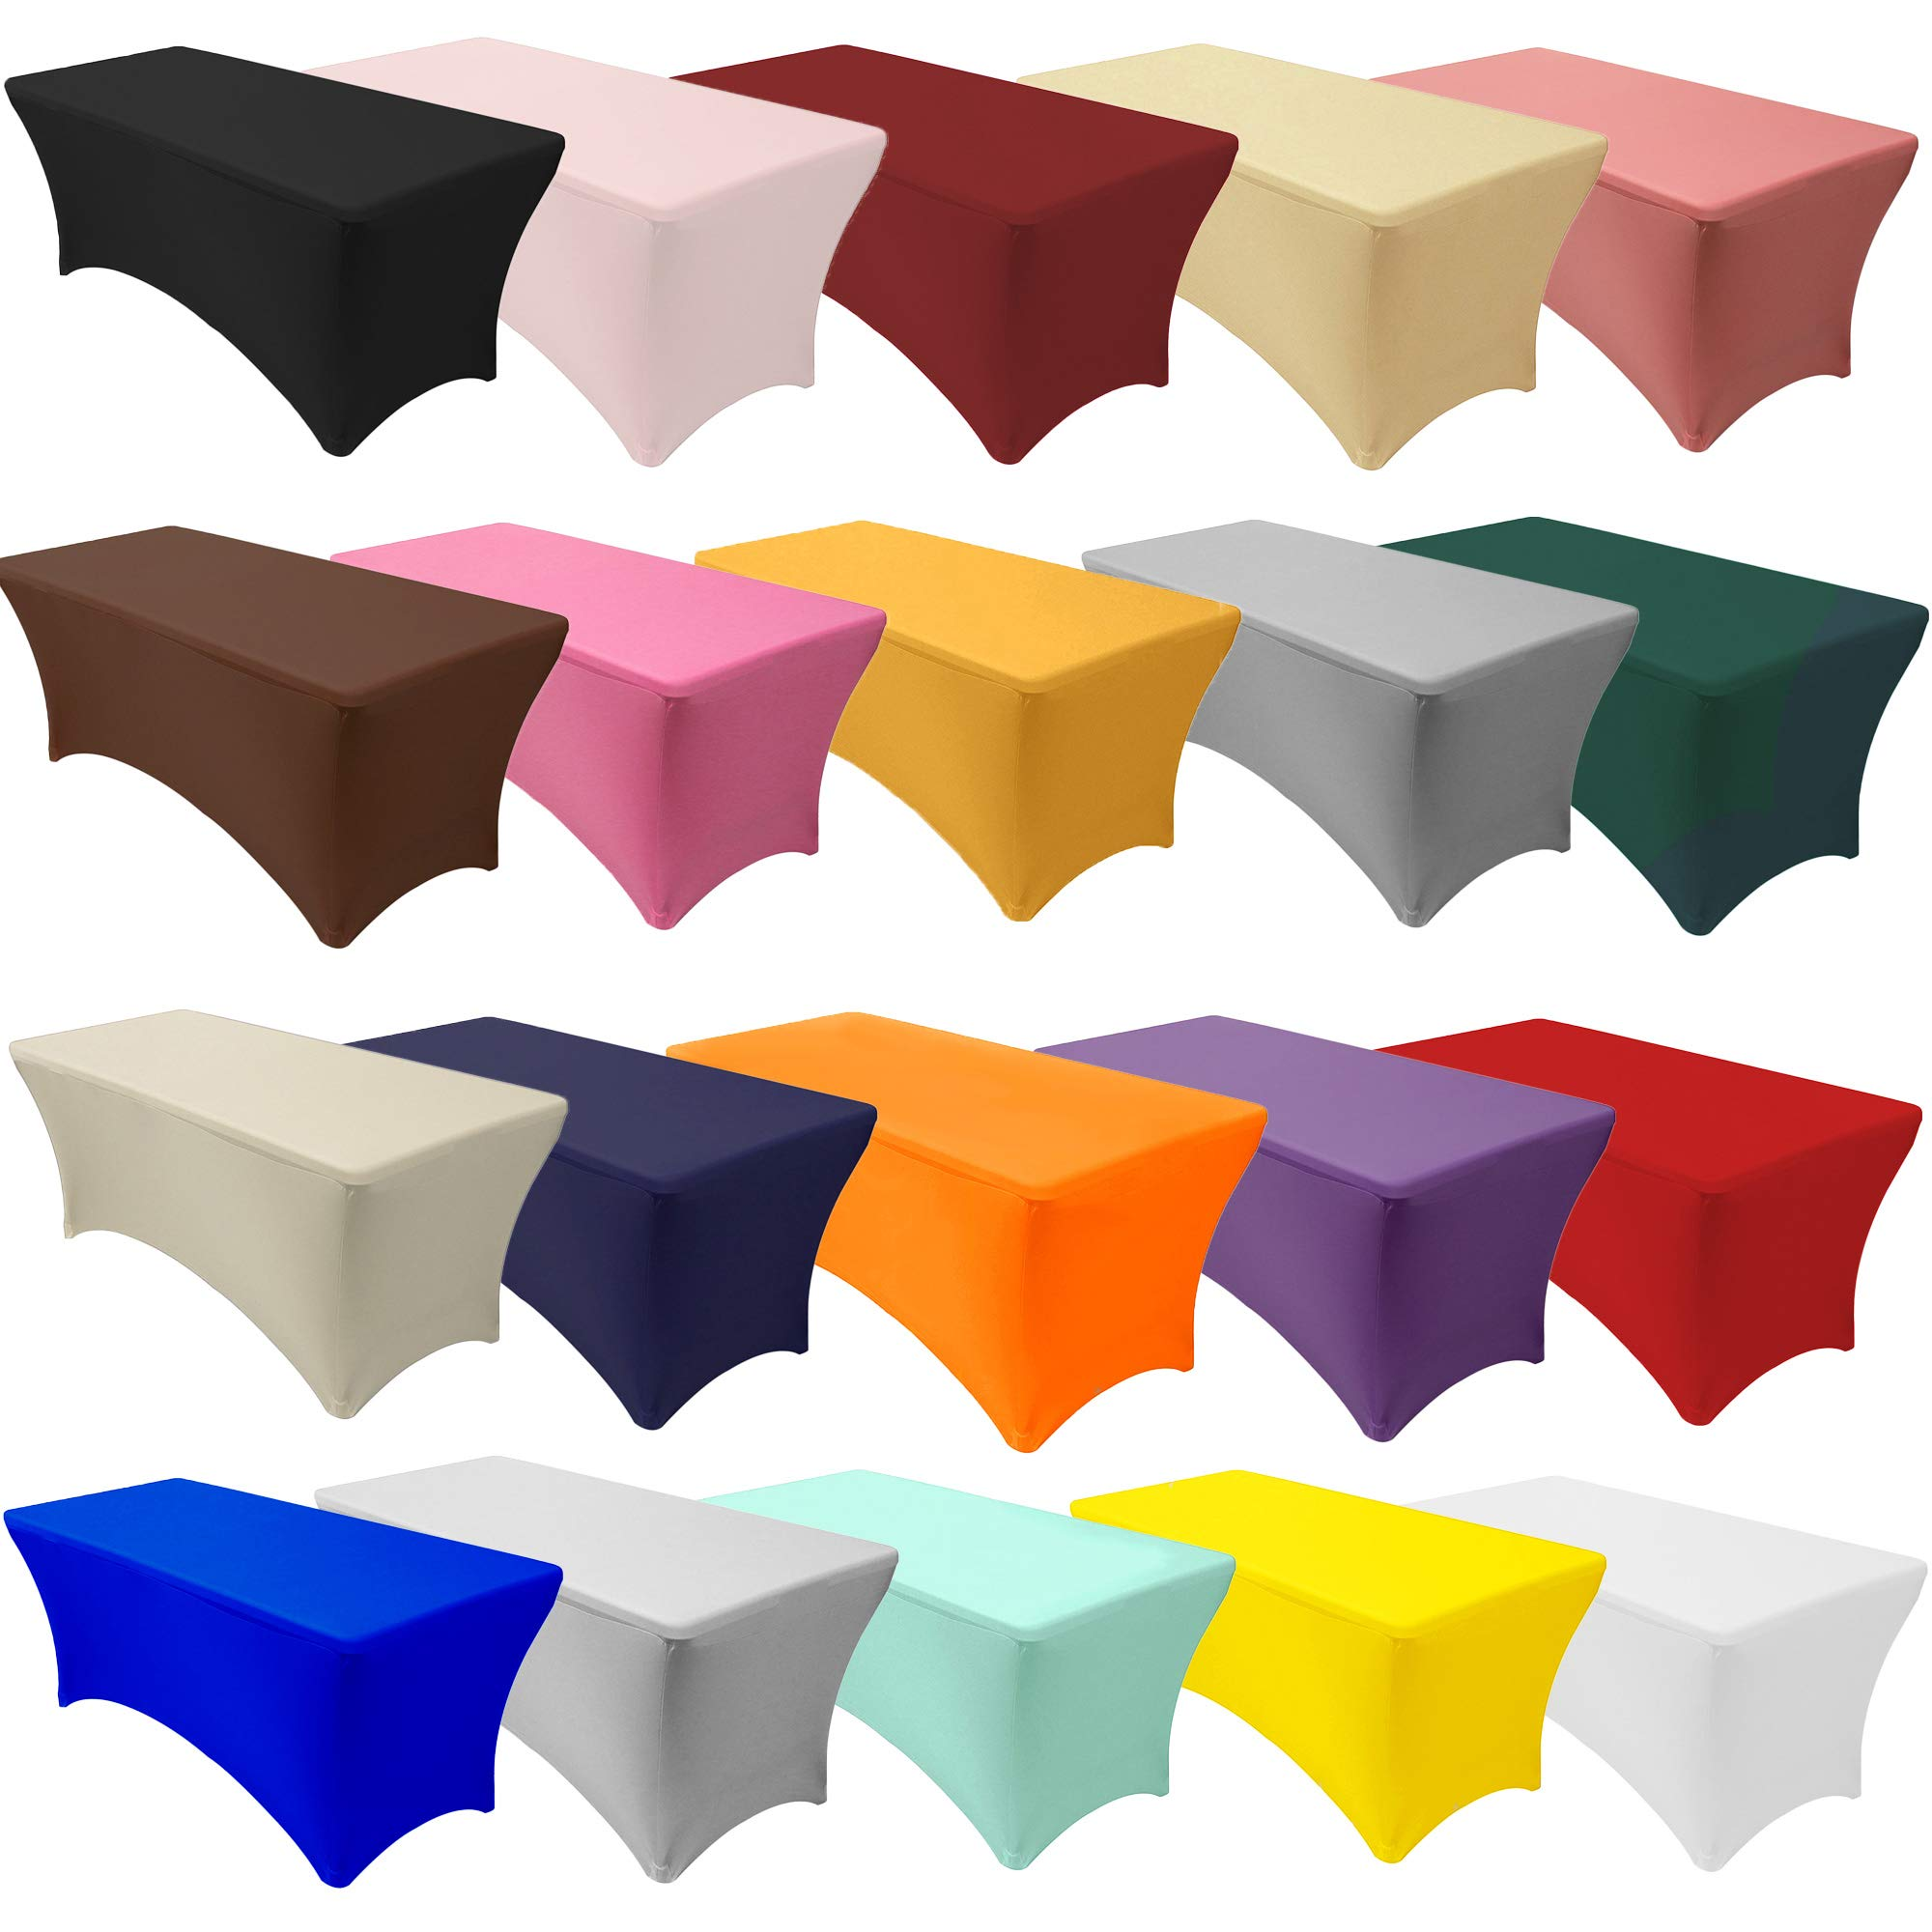 Your Chair Covers - 8 ft Rectangular Fitted Stretch Spandex Table Cover for 96'' Length x 30'' Width x 30'' Height Fitted Tablecloth for Standard Folding Tables - Black by Your Chair Covers